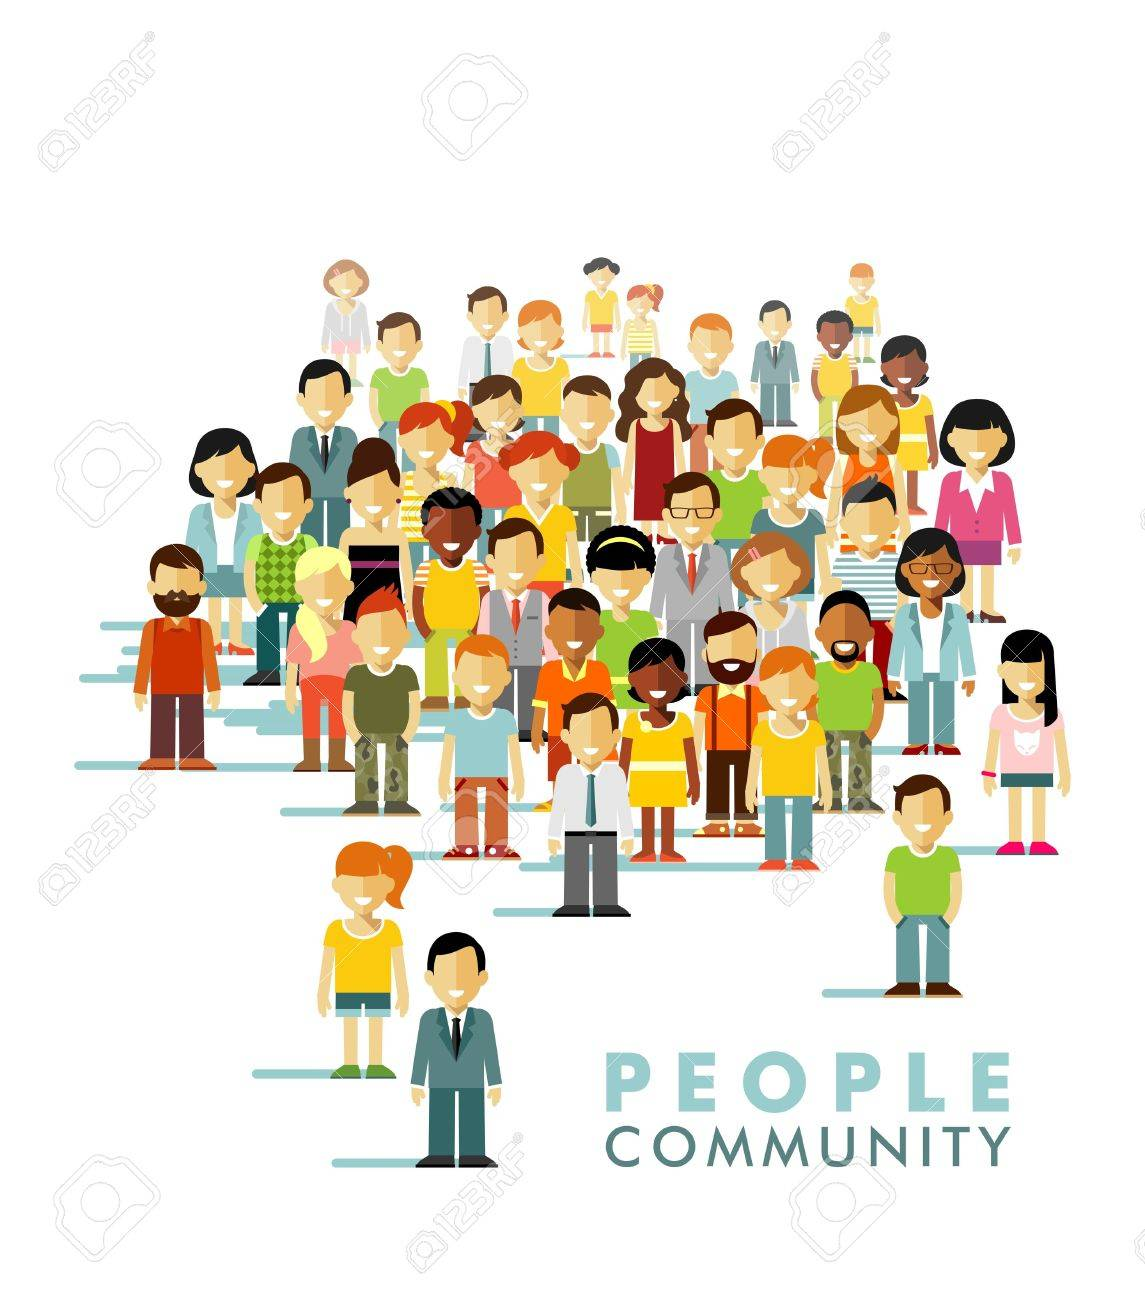 285 138 community stock vector illustration and royalty free rh 123rf com community clipart images community clipart logo